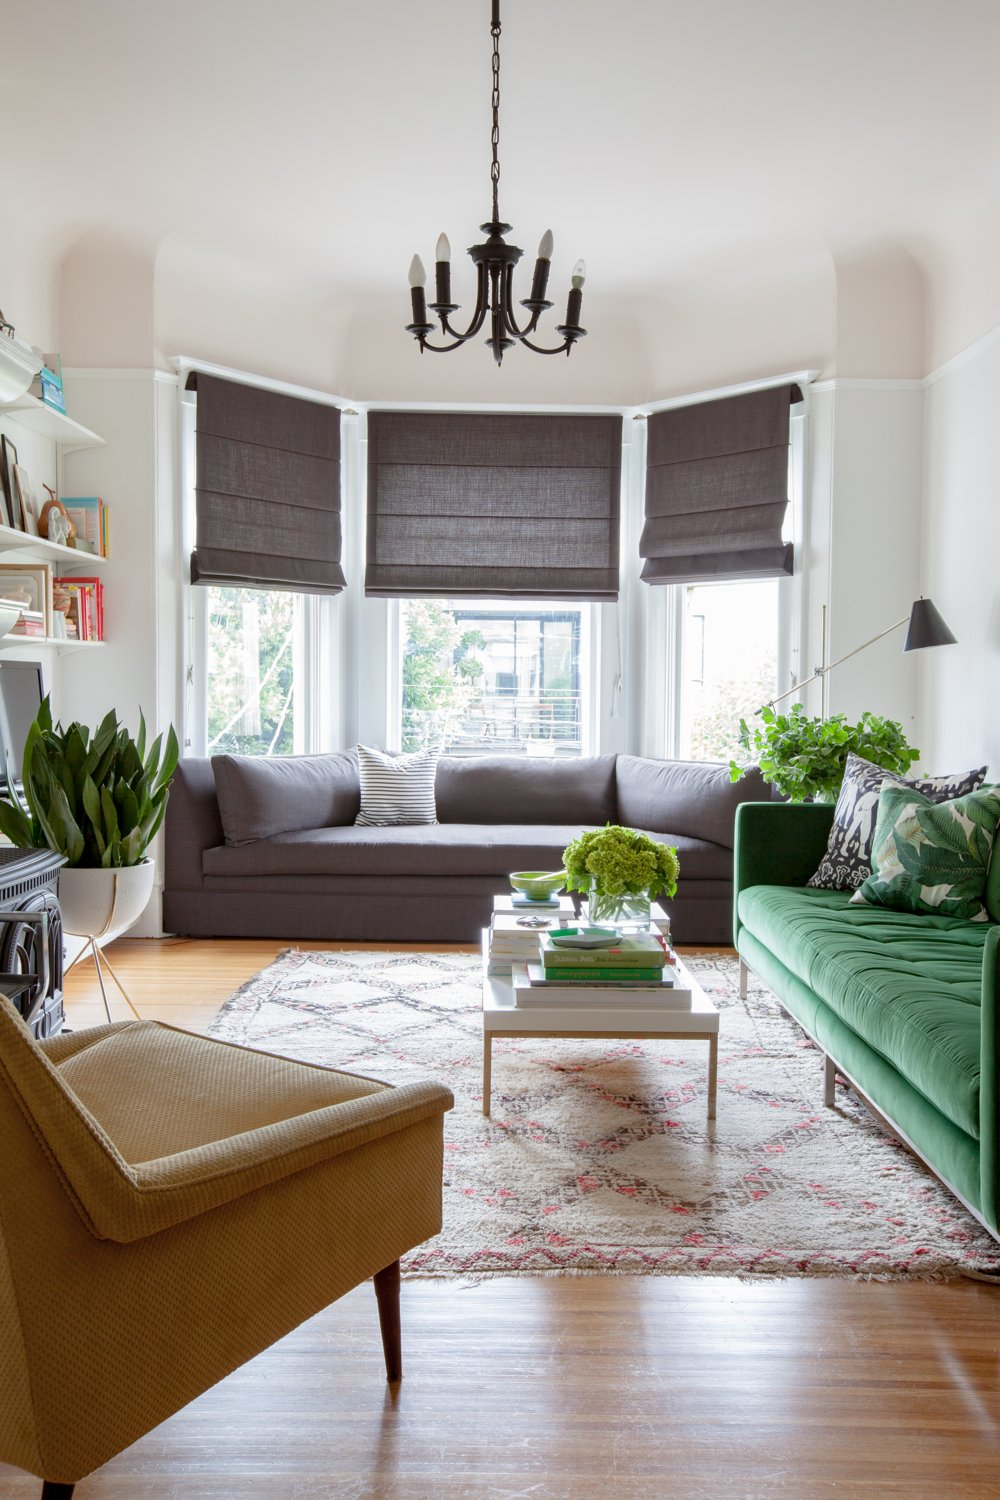 San francisco house tour a cup of jo - Living room with bay window ...